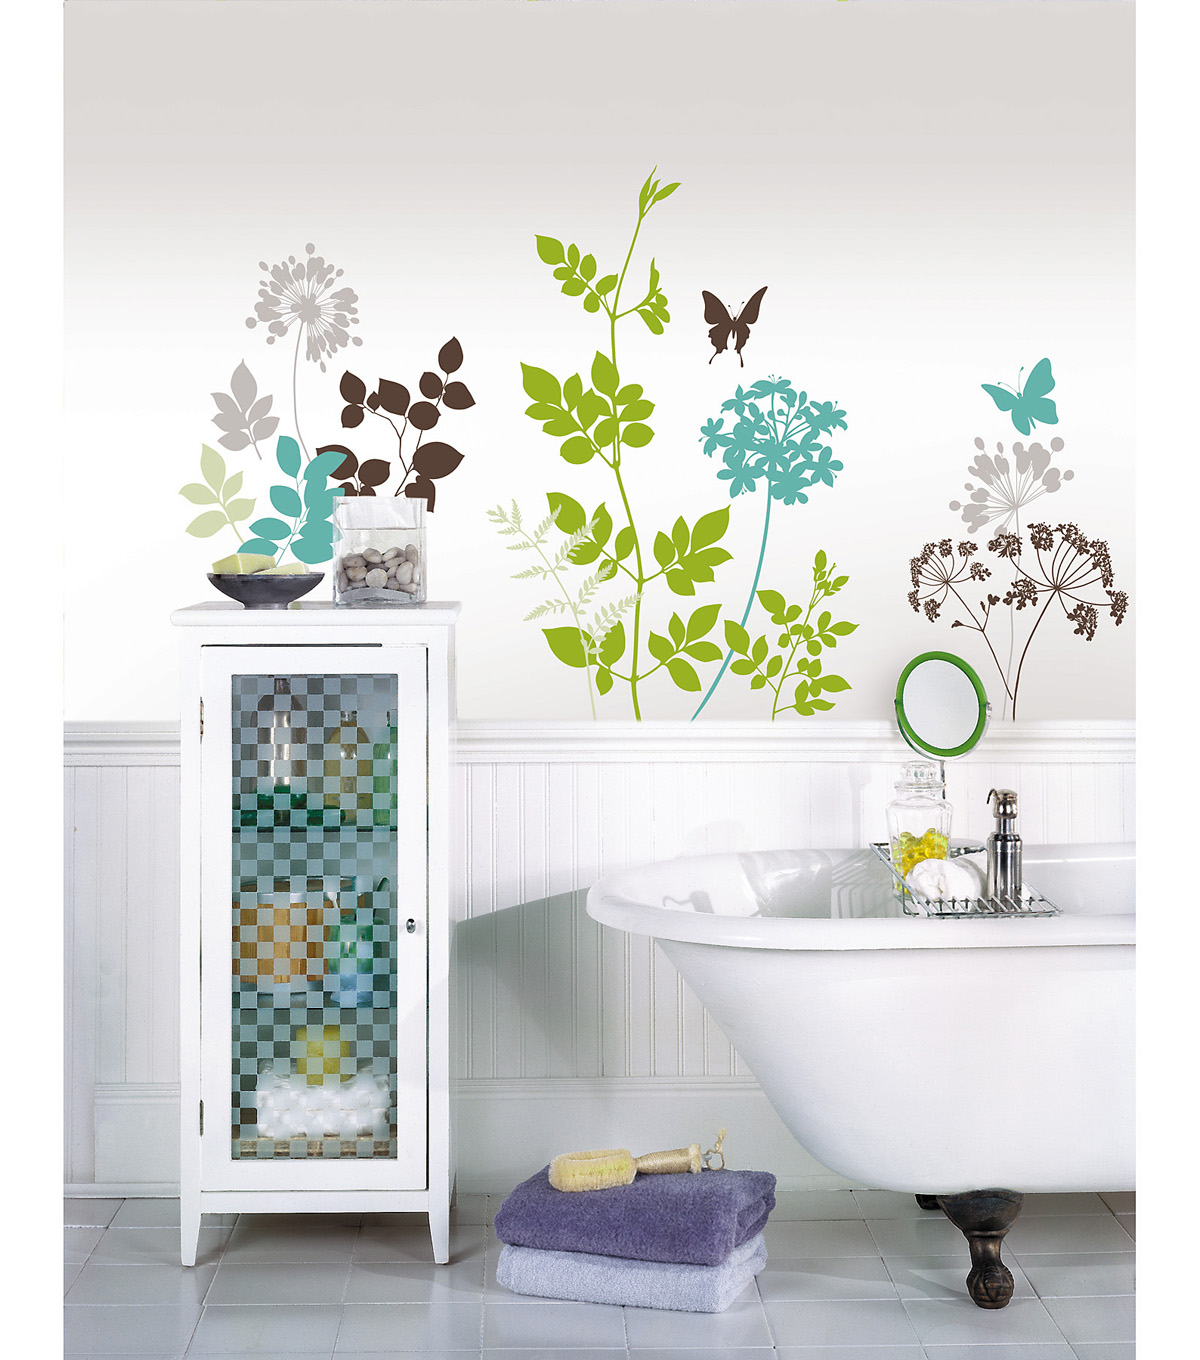 Wall Pops Habitat Wall Art Decal Kit, 14 Piece Set